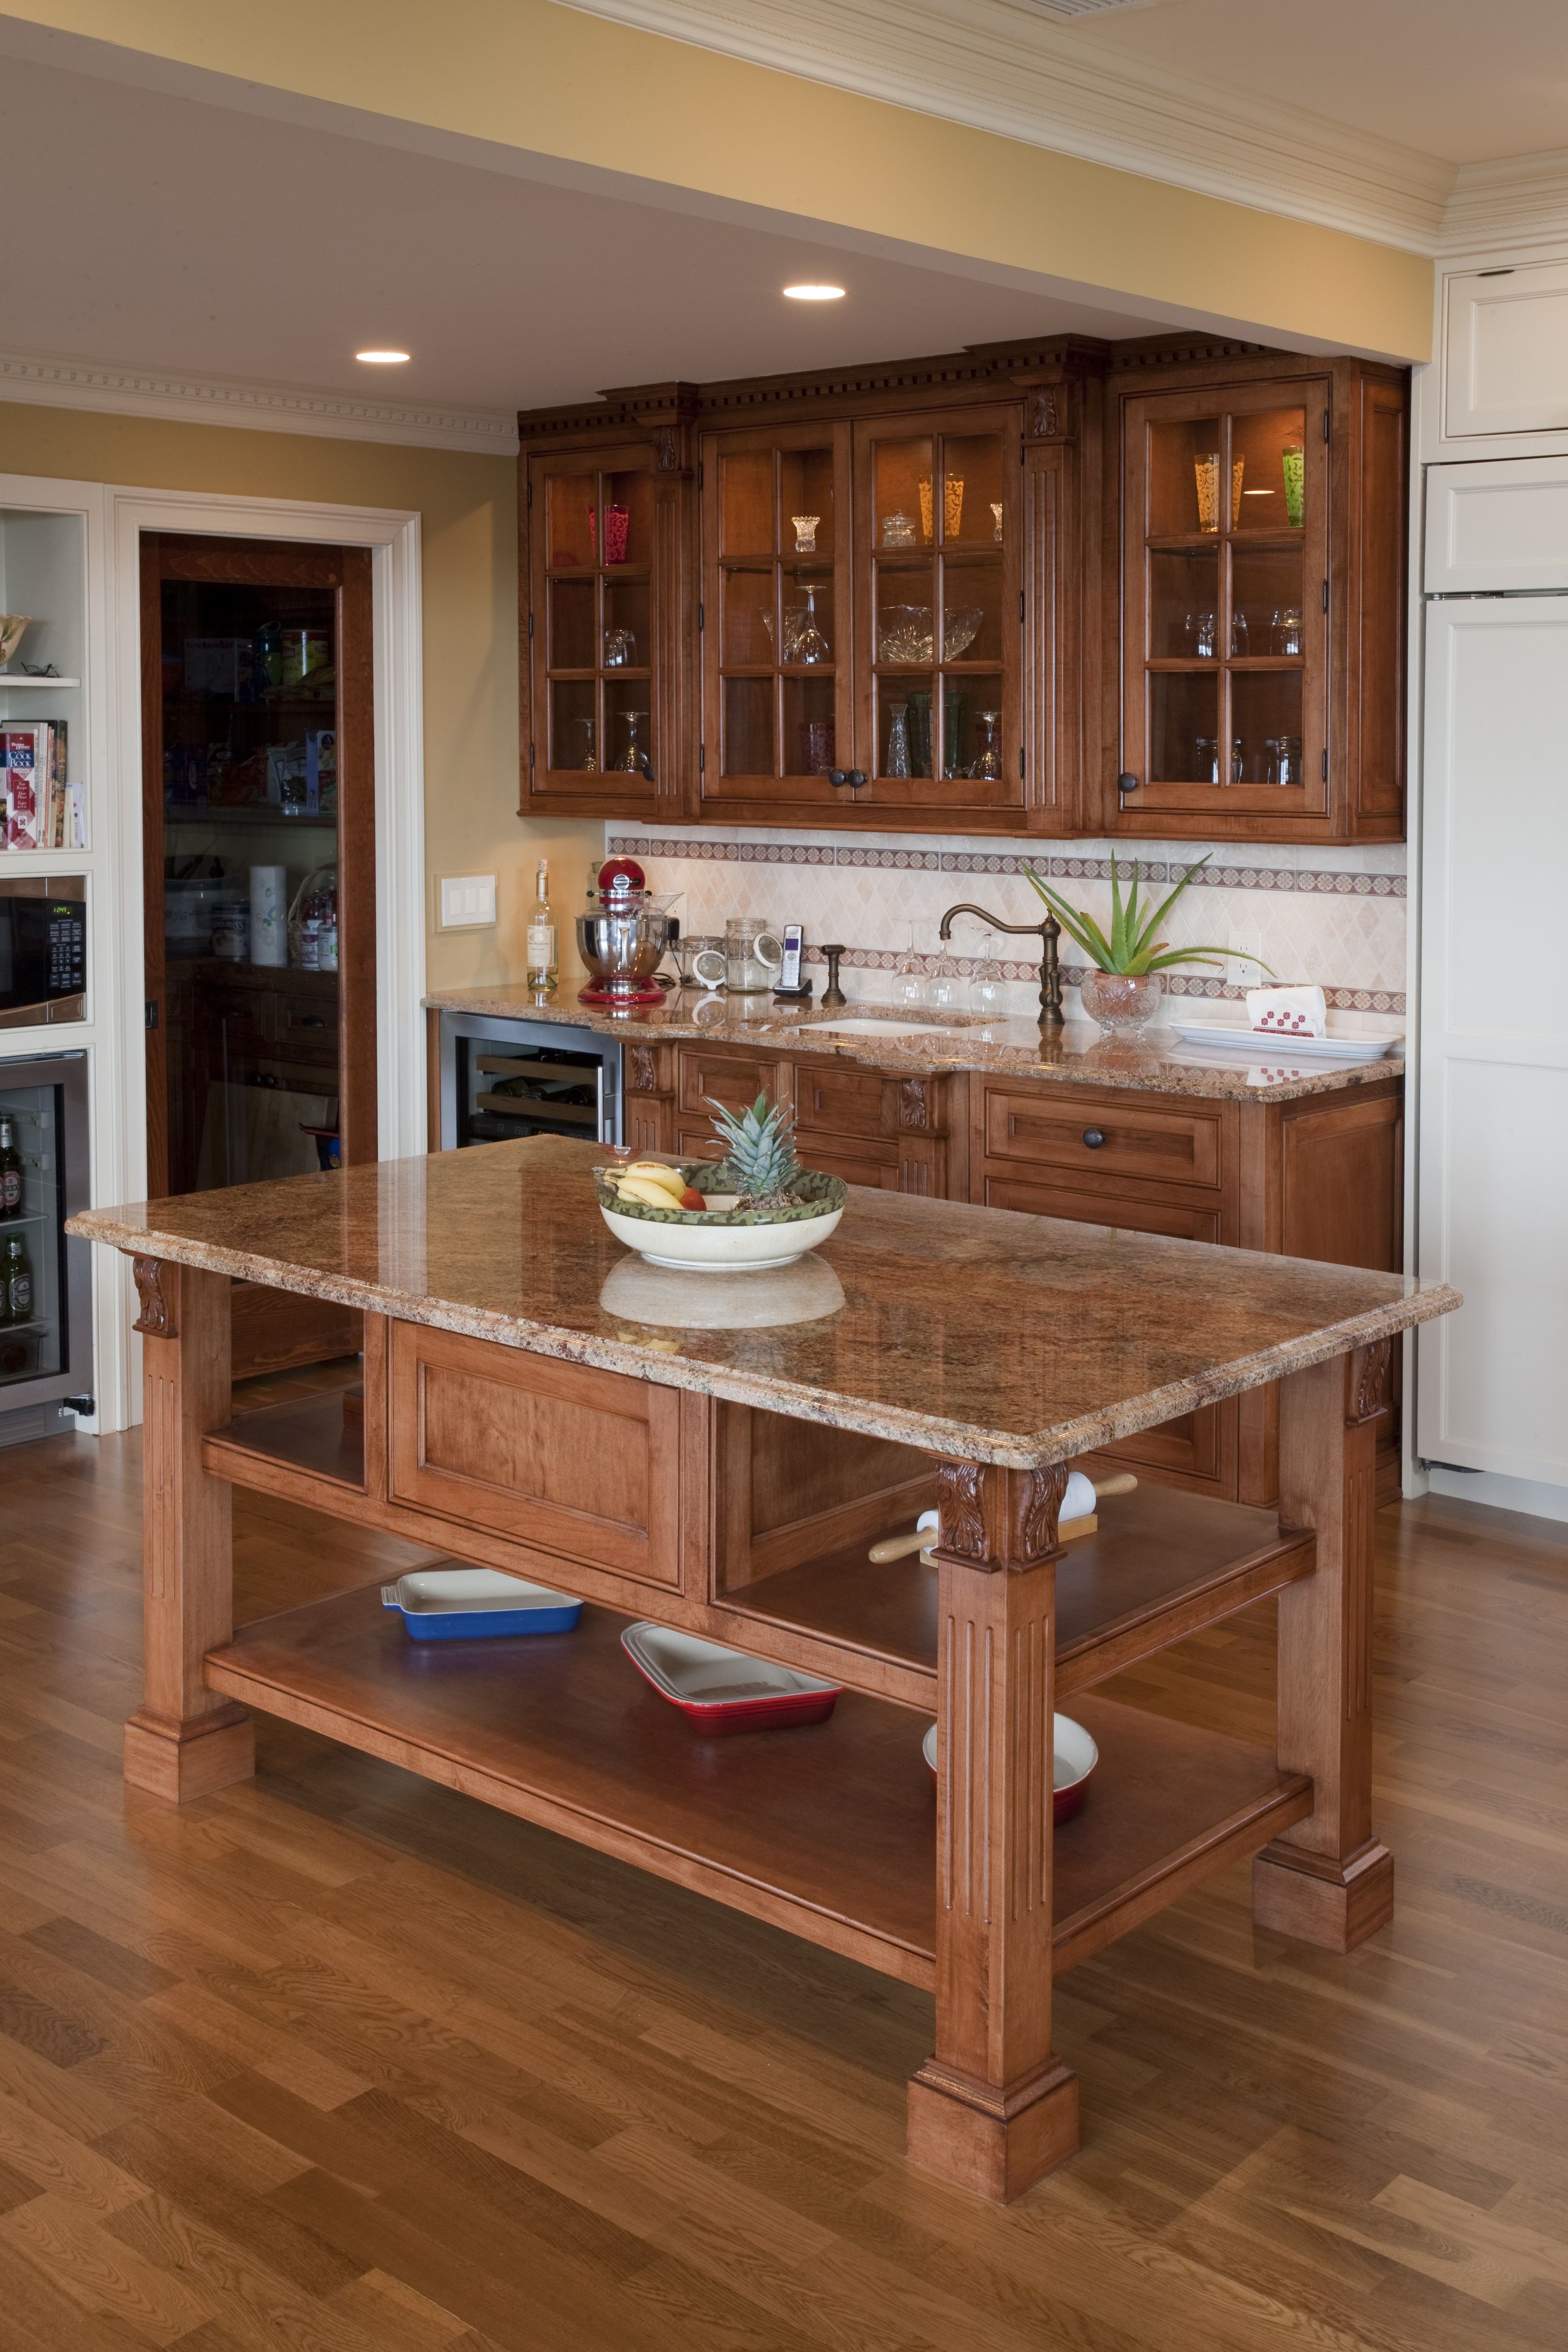 Kitchen Islands, Peninsulas And Even Floating Kitchen Islands Can Be  Incorporated Into Your Kitchen Design To Promote Efficiency And  Productivity.